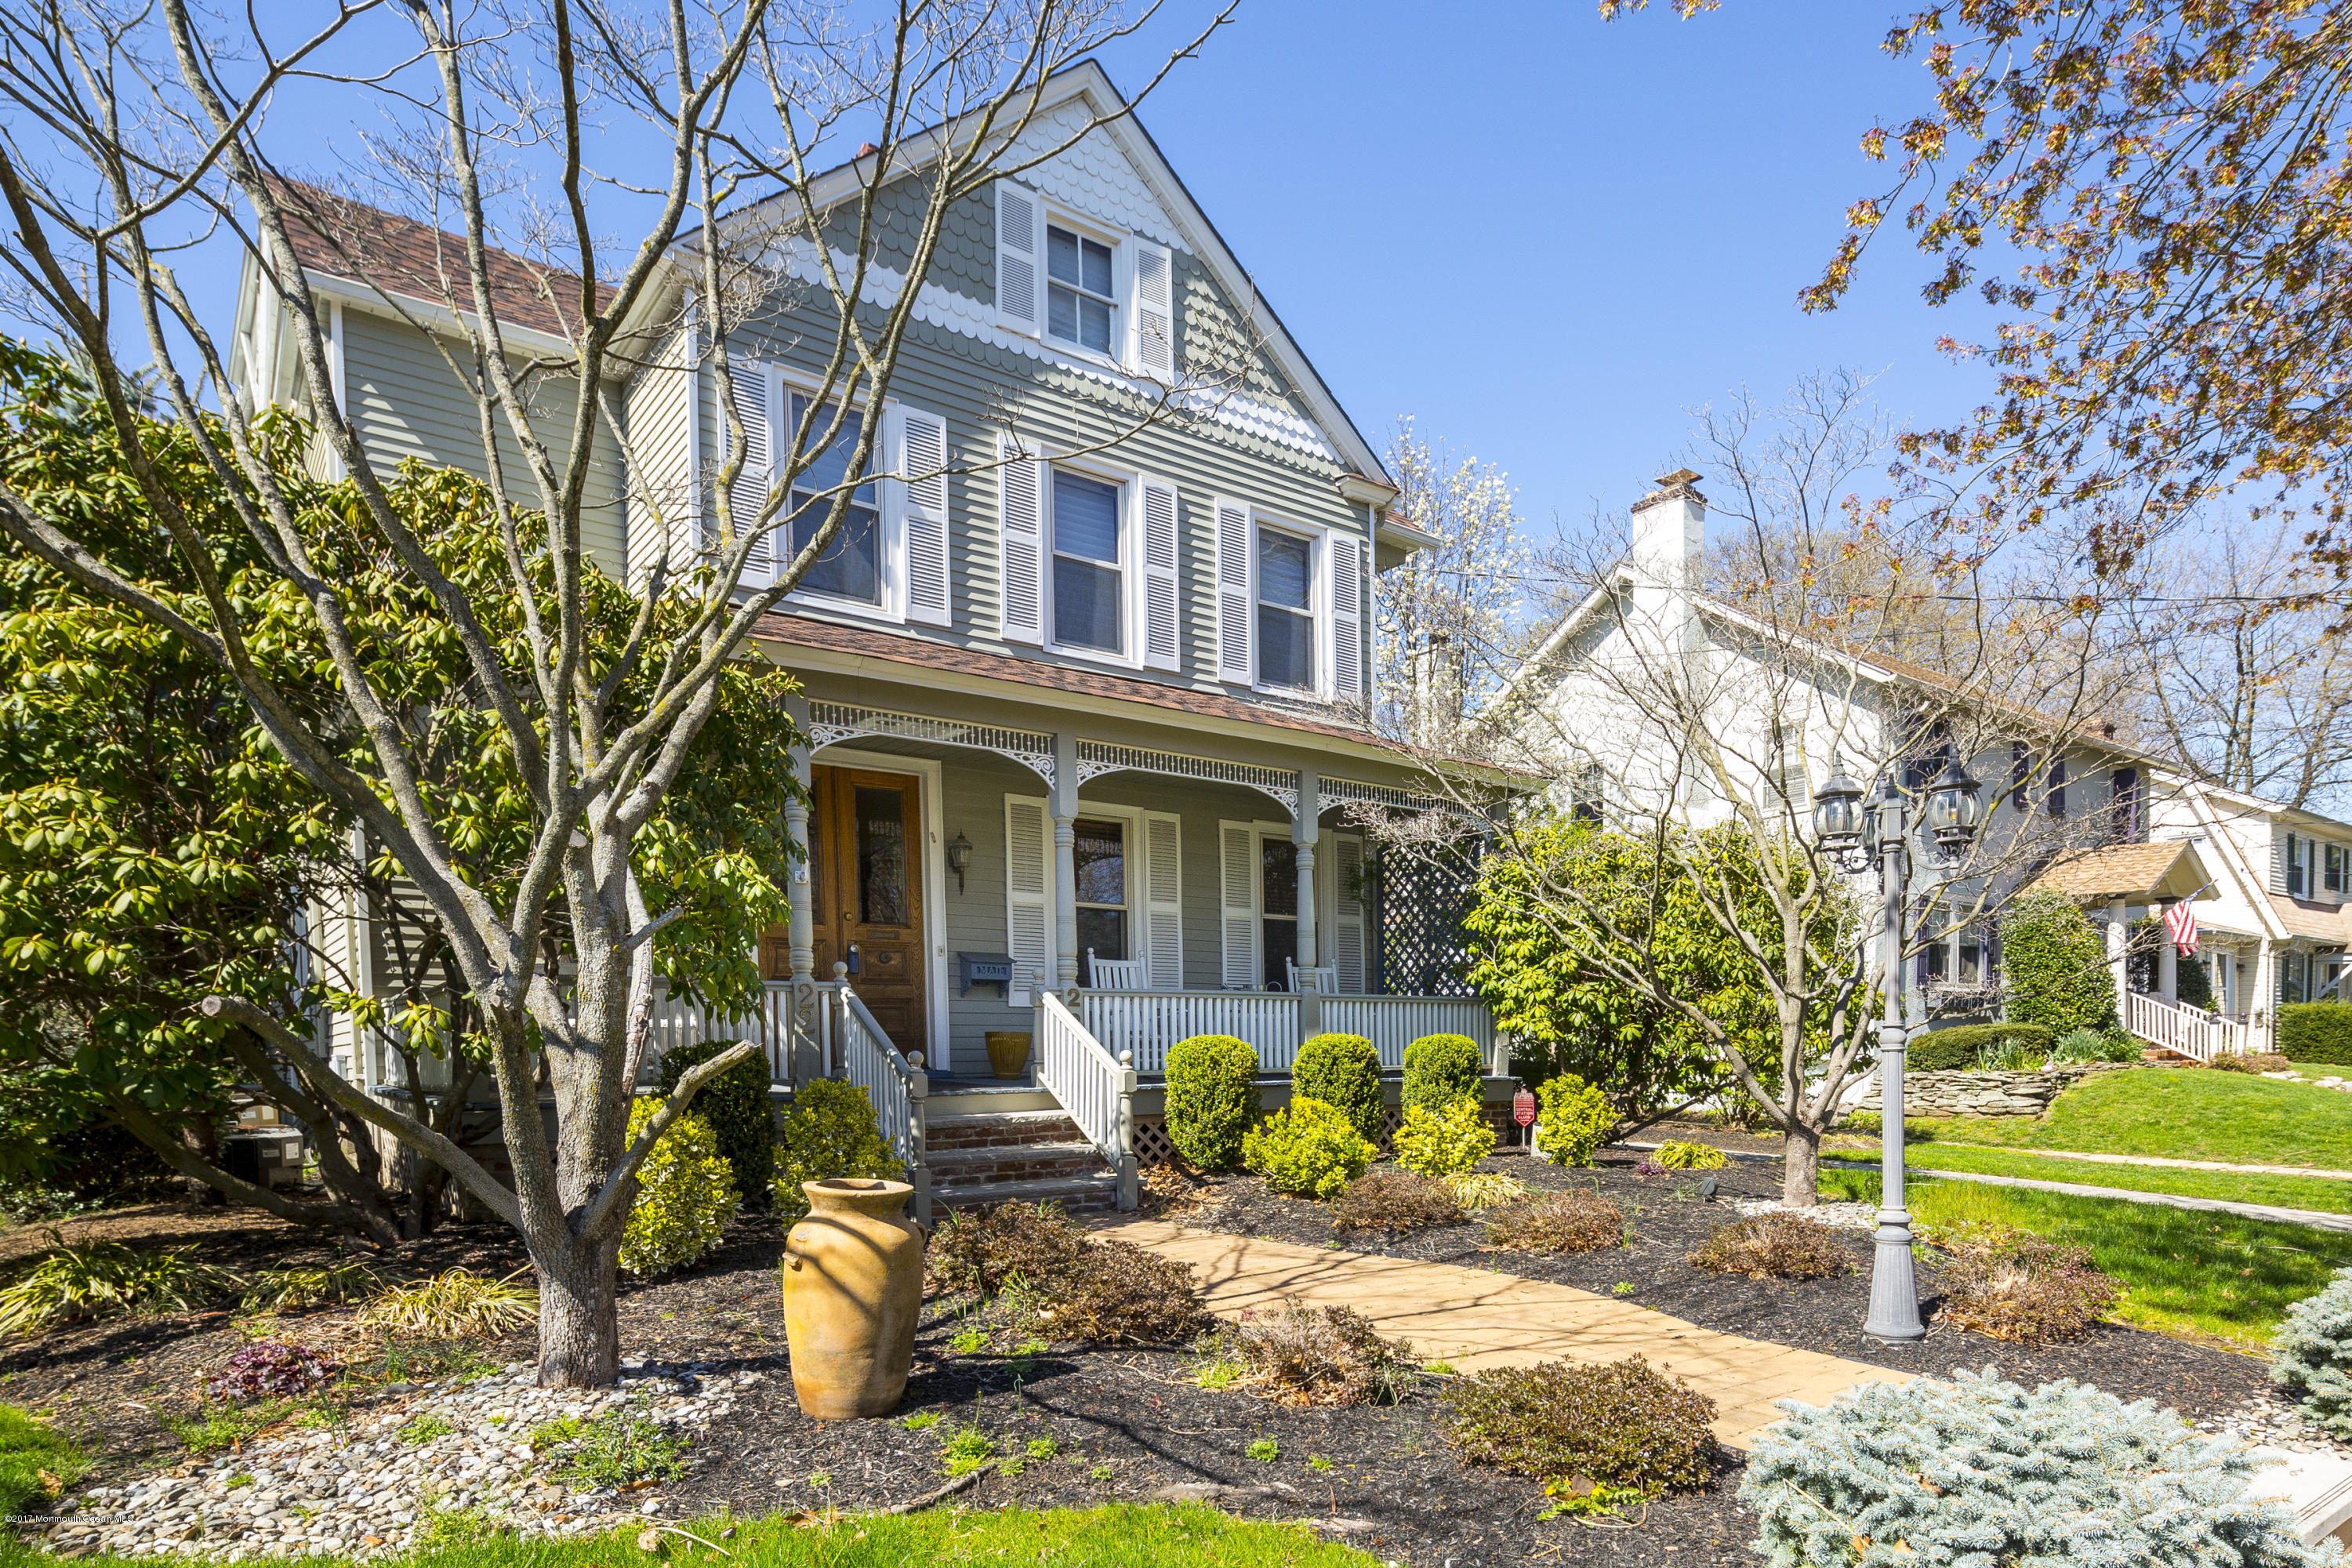 22 E BERGEN PLACE, RED BANK, NJ 07701